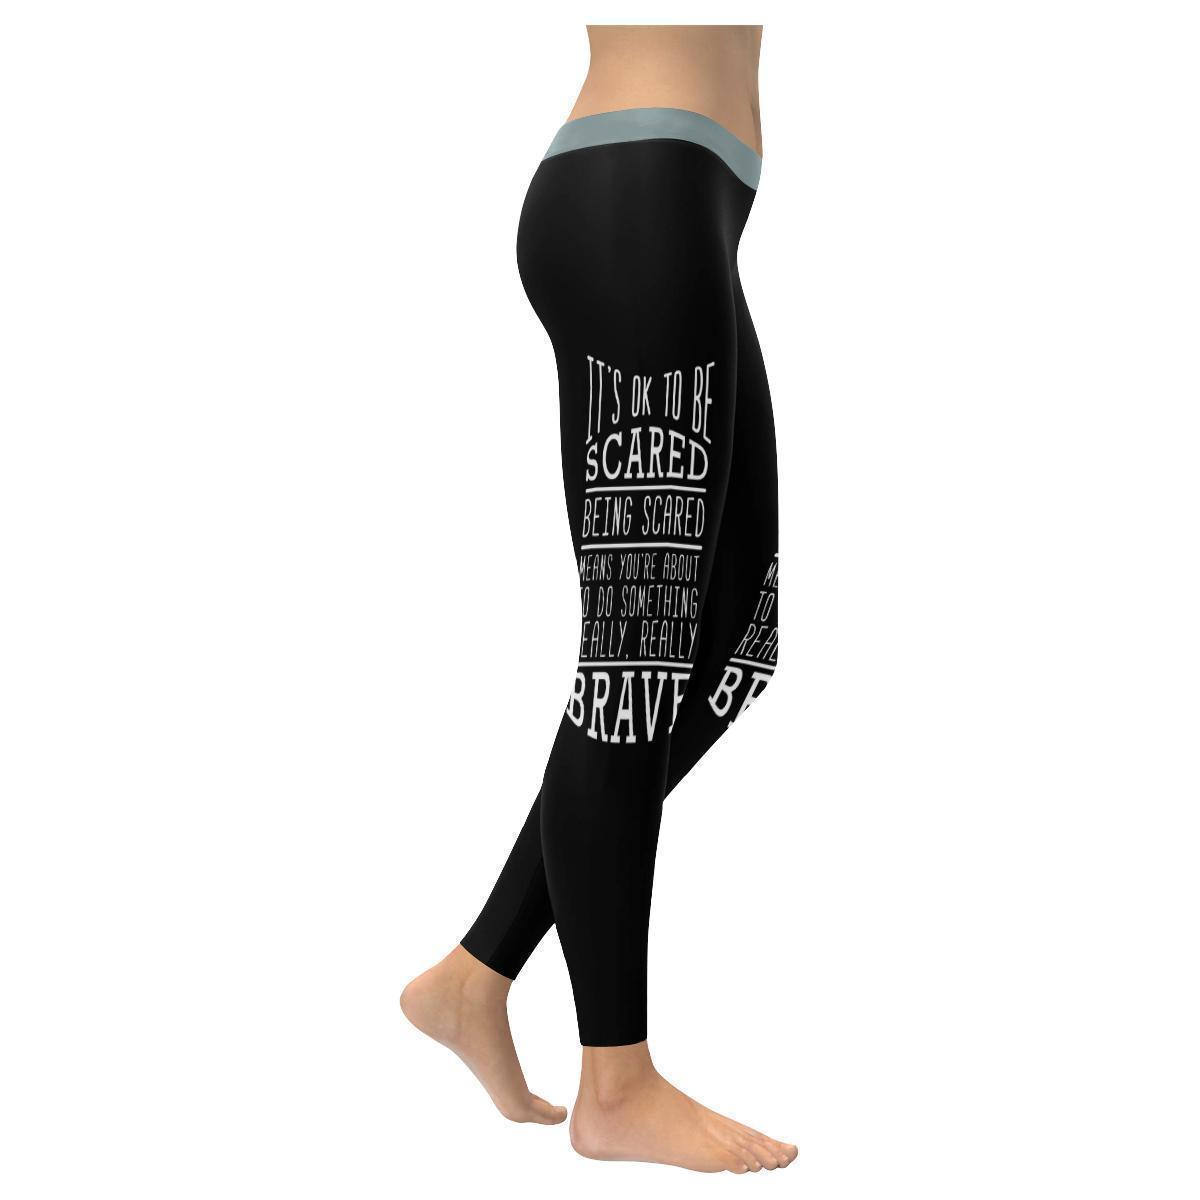 It's OK To Be Scared Being Scared Means You're About To Do Something Really Really Brave Inspirational Motivational Quotes Low Rise Leggings For Women (3 colors)-XXS-Black-JoyHip.Com